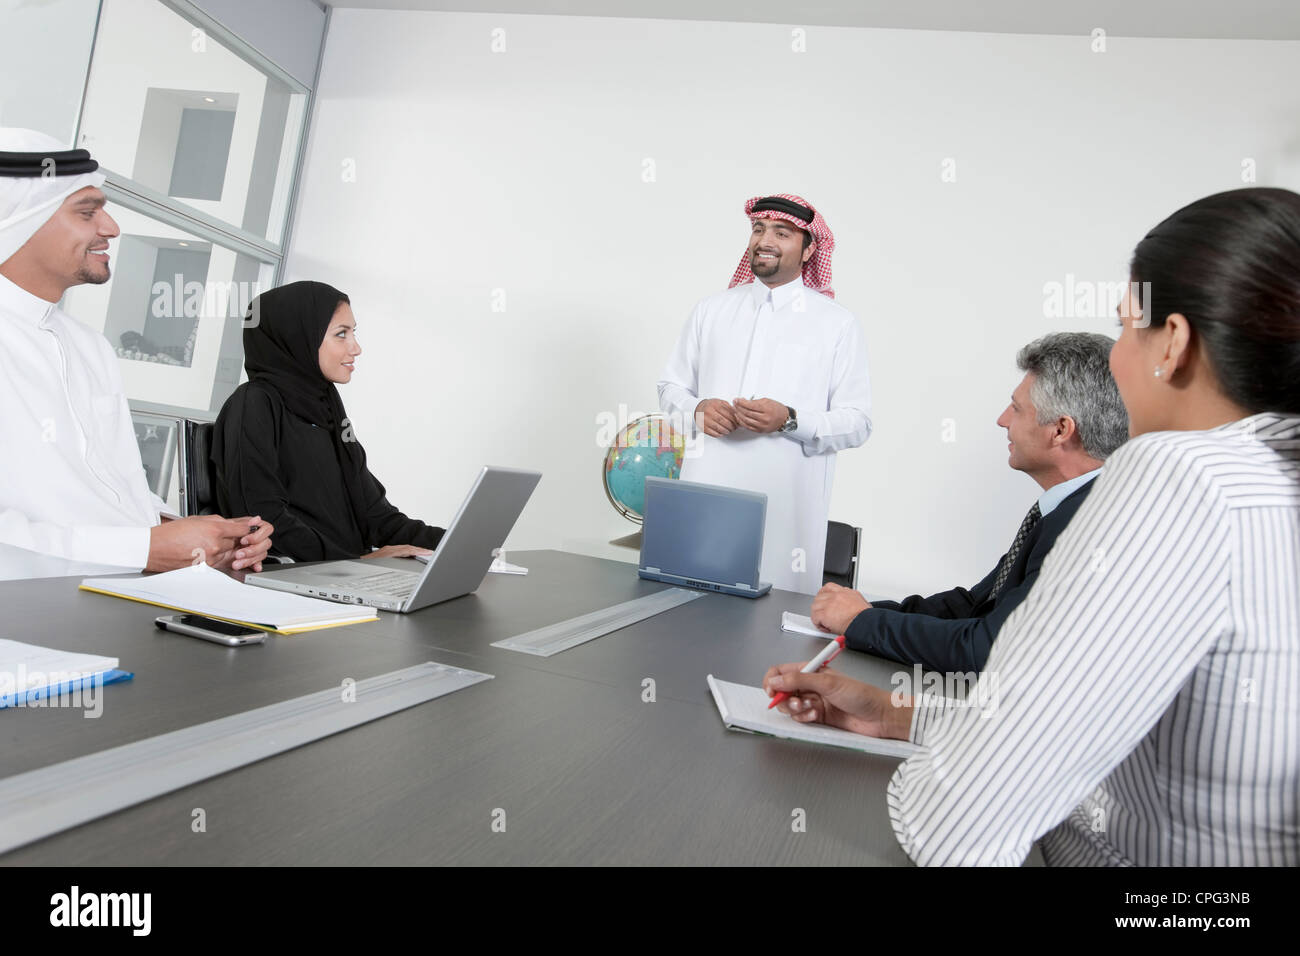 Group of business people having a meeting. - Stock Image